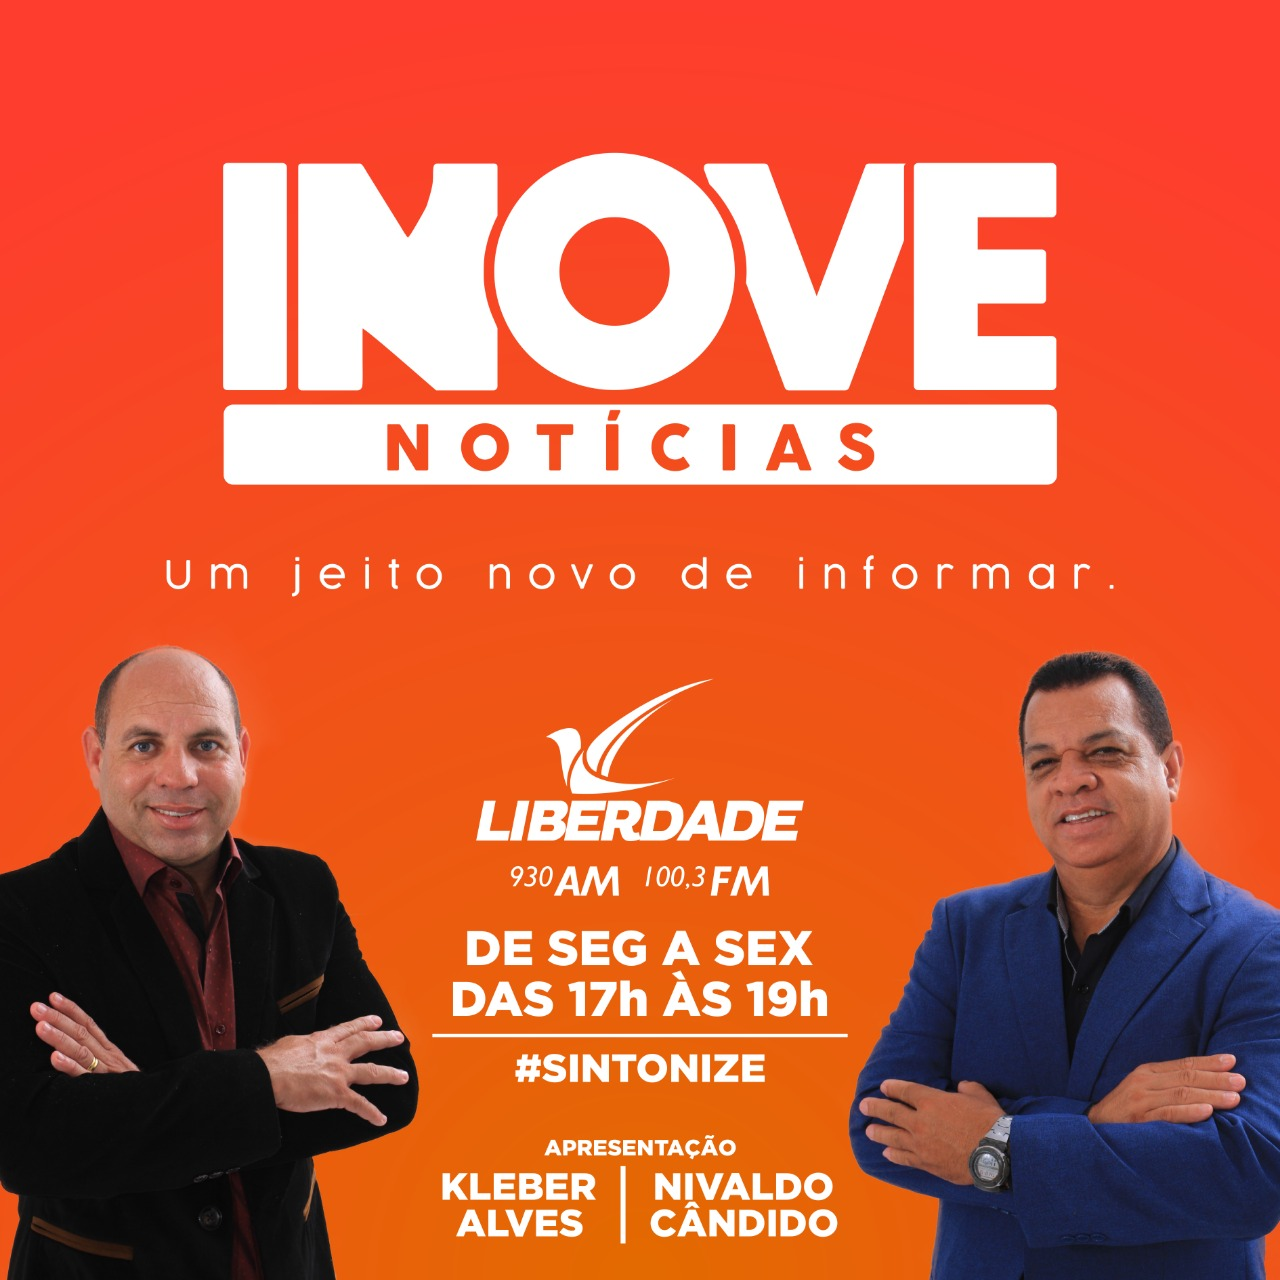 INOVE NOTÍCIAS - UM JEITO NOVO DE INFORMAR - NA RÁDIO LIBERDADE AM 930